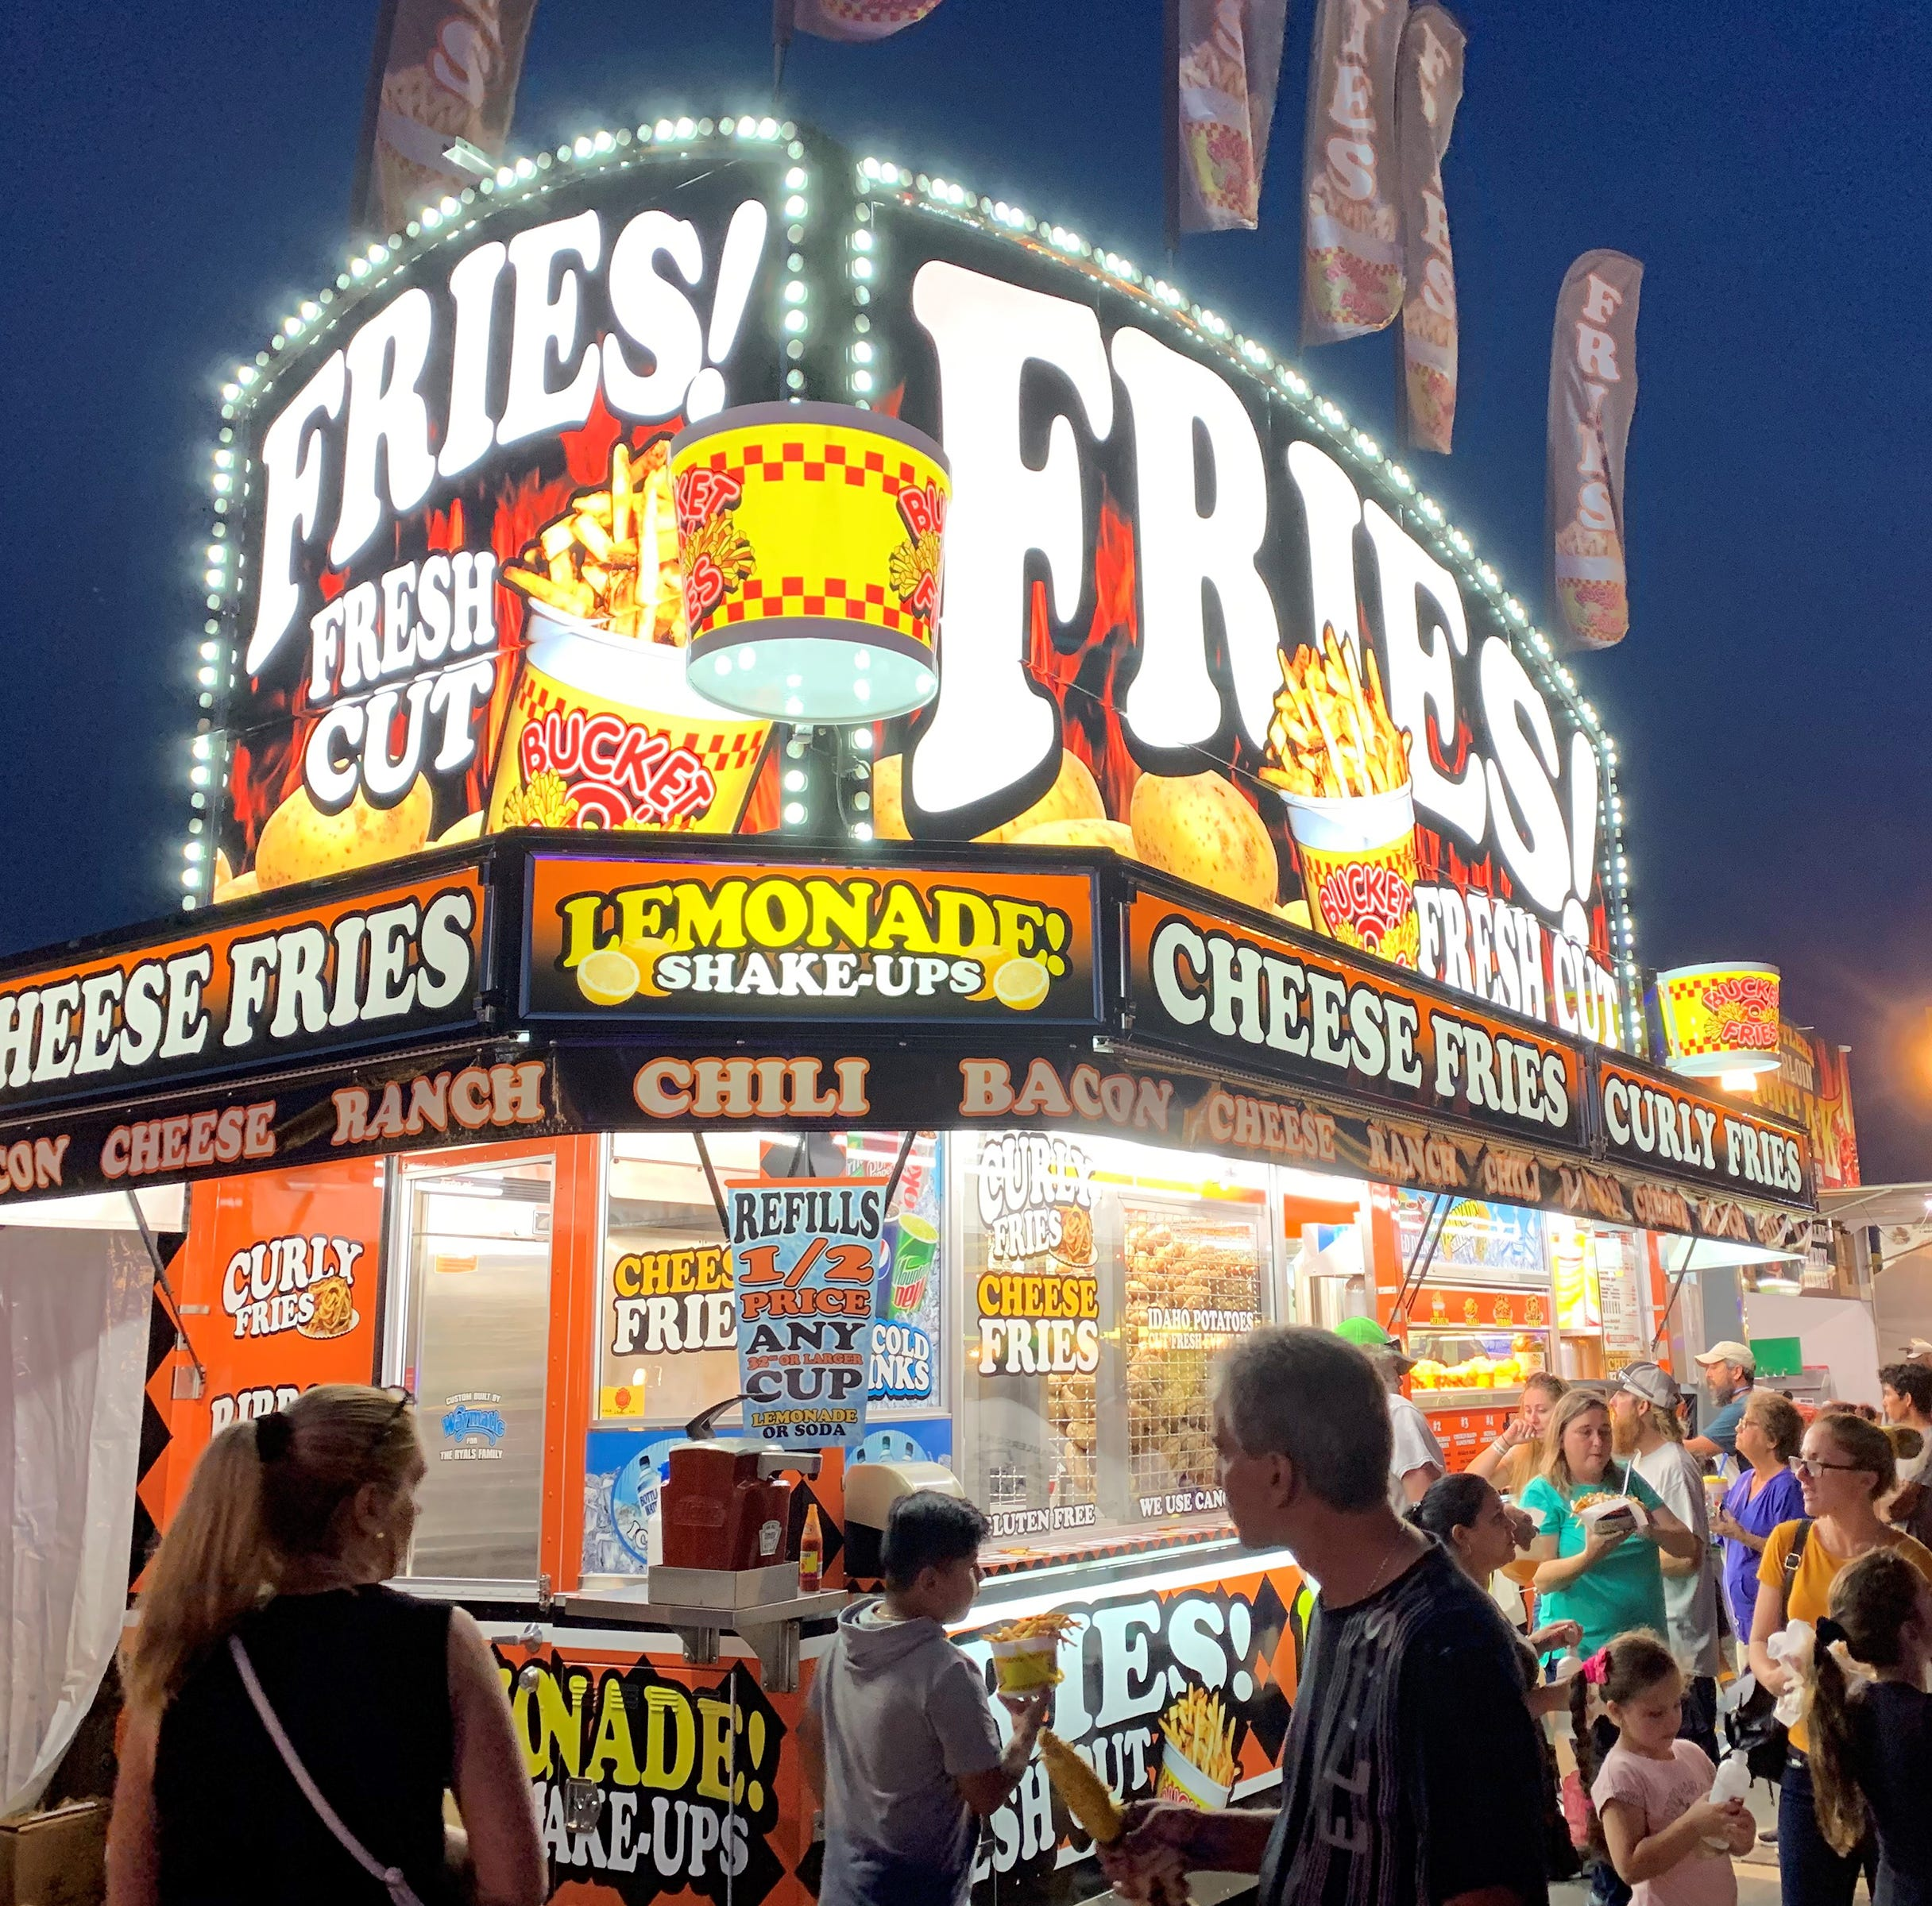 'Watt's for Dinner': Food fare at the fair